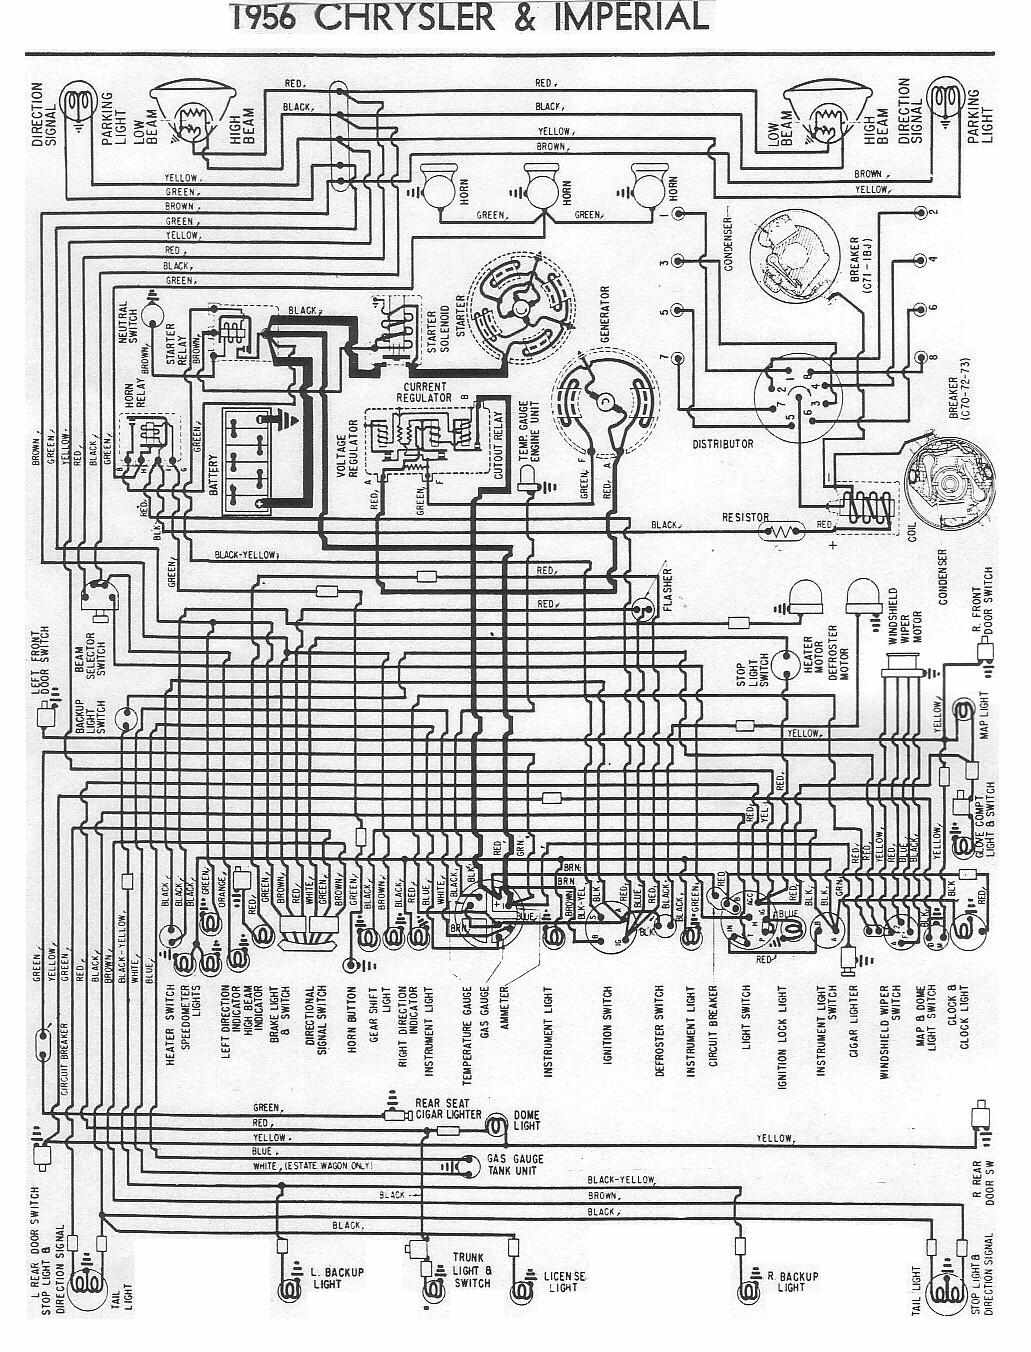 Electrical Wiring Diagrams Of 1956 Chrysler And Imperial